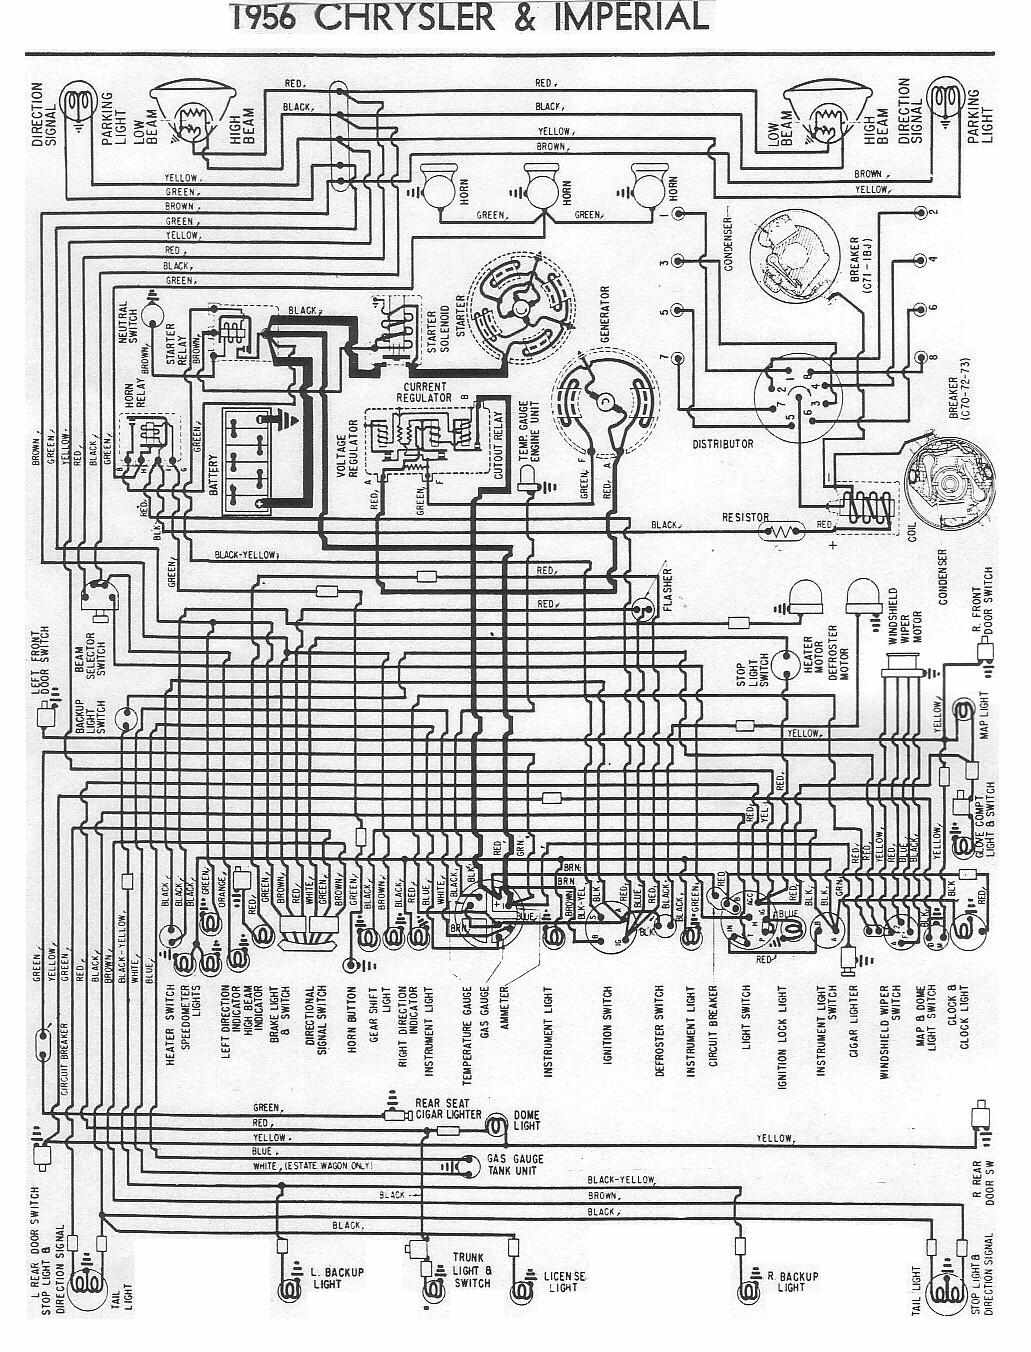 Electrical Wiring Diagrams Of 1956 Chrysler And Imperial